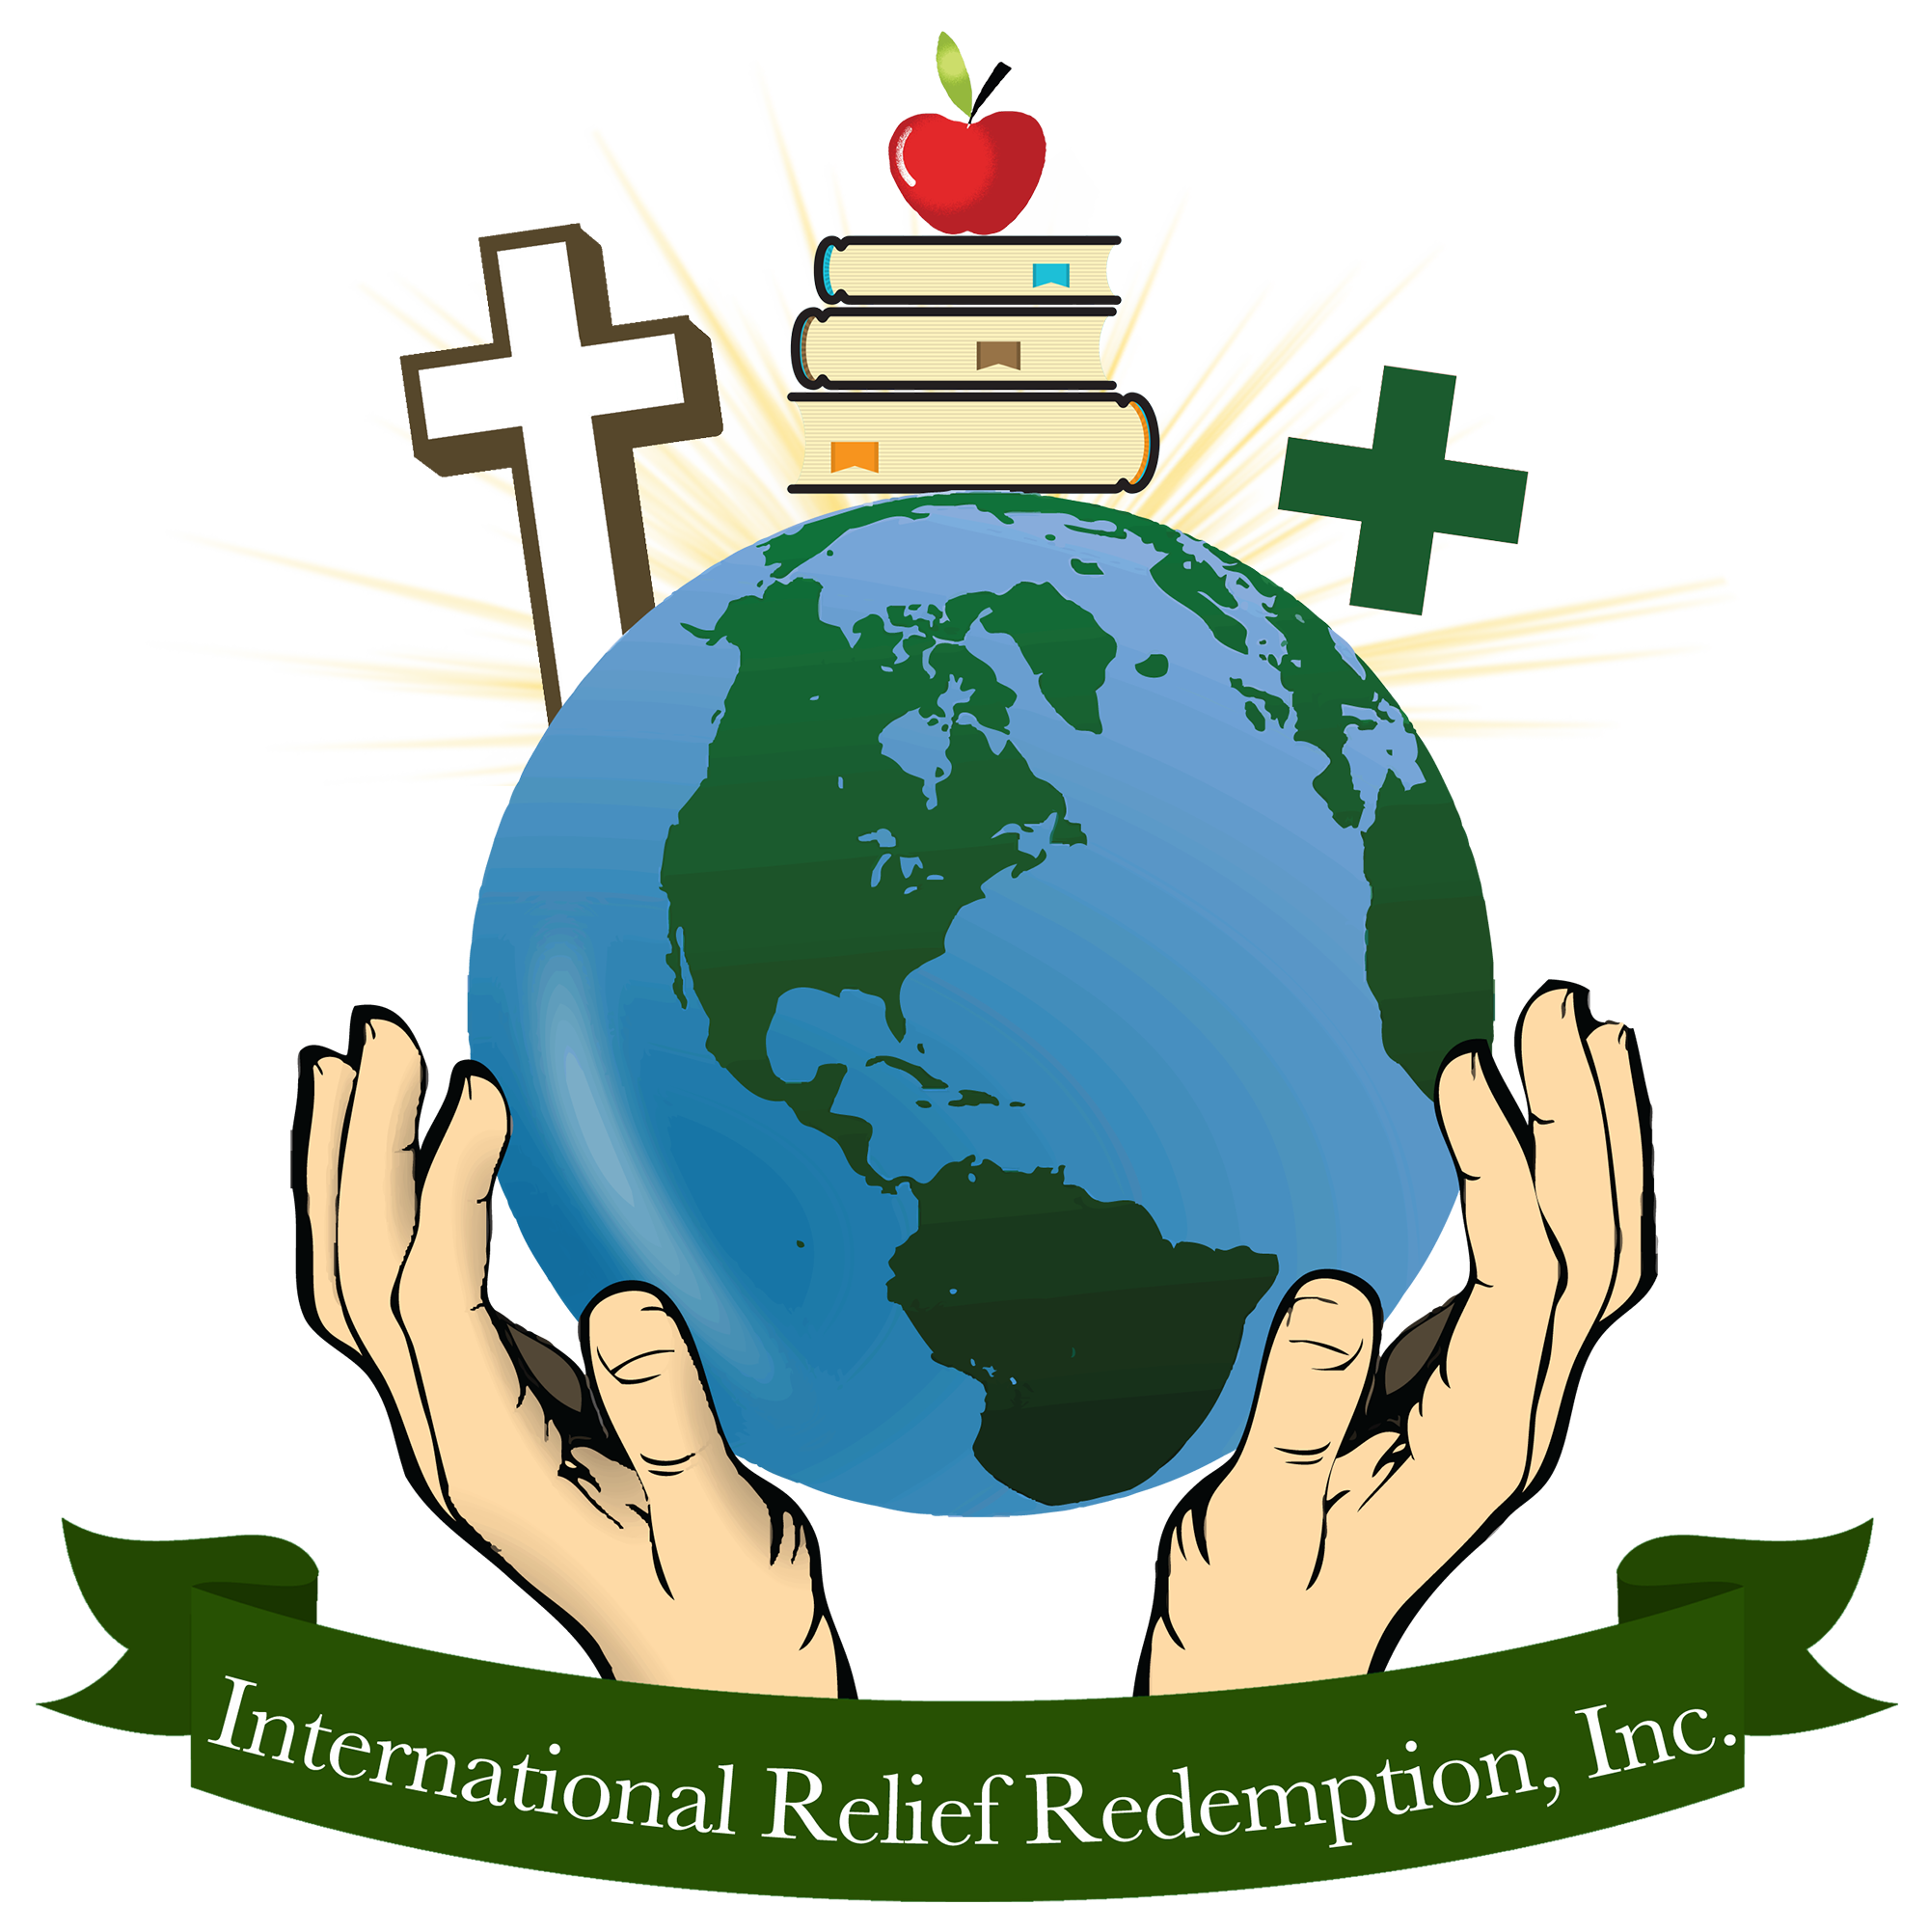 International-Relief-Redemption